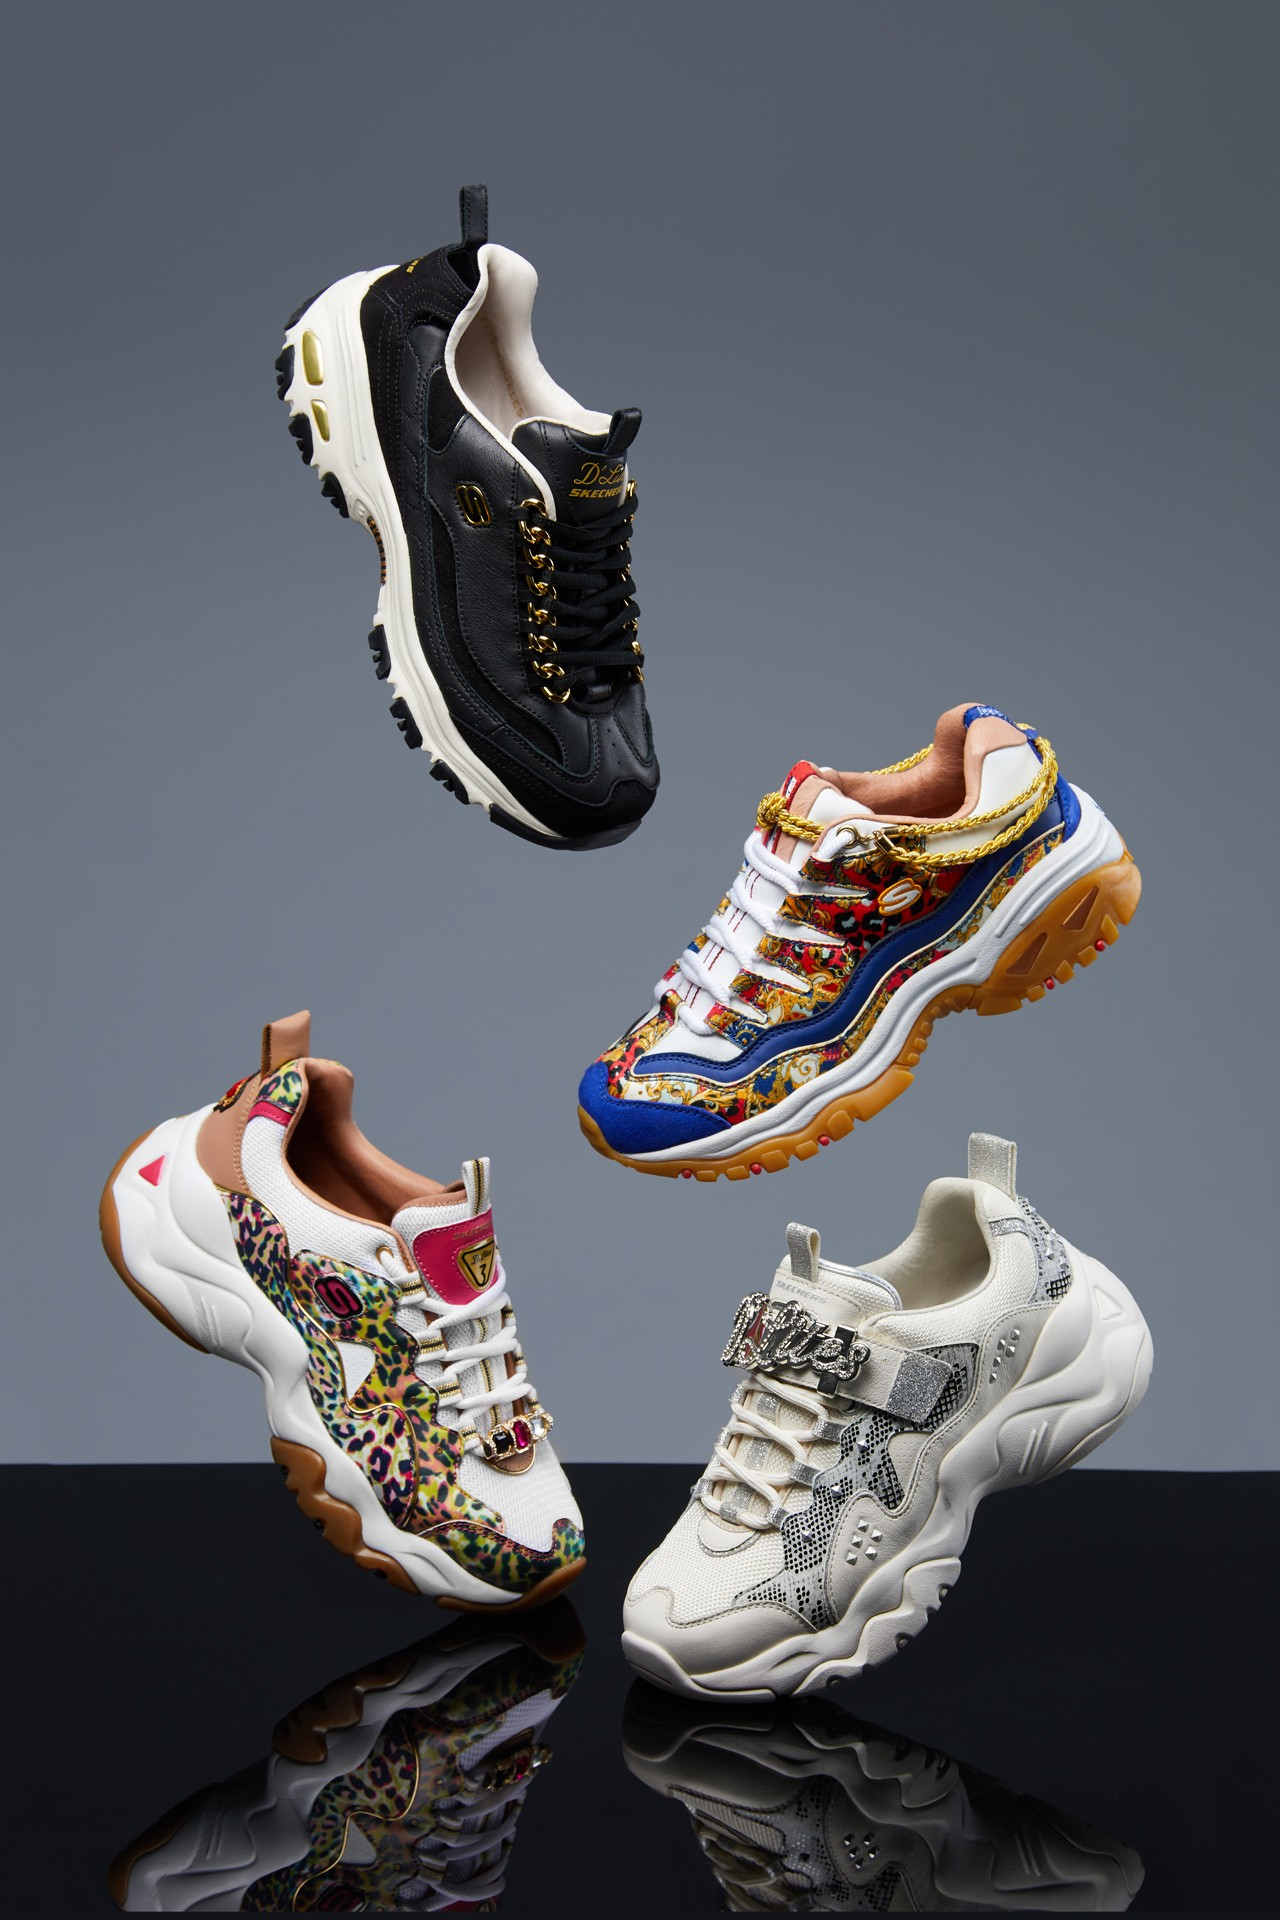 Skechers Luxury Material Limited Edition Collection Heritage premium quality Skechers D'Lites Skechers D'Lites 3.0 Skechers Energy Flashy Stud Cheetah Queen Golden Idea Captains View iconic designs classic silhouettes